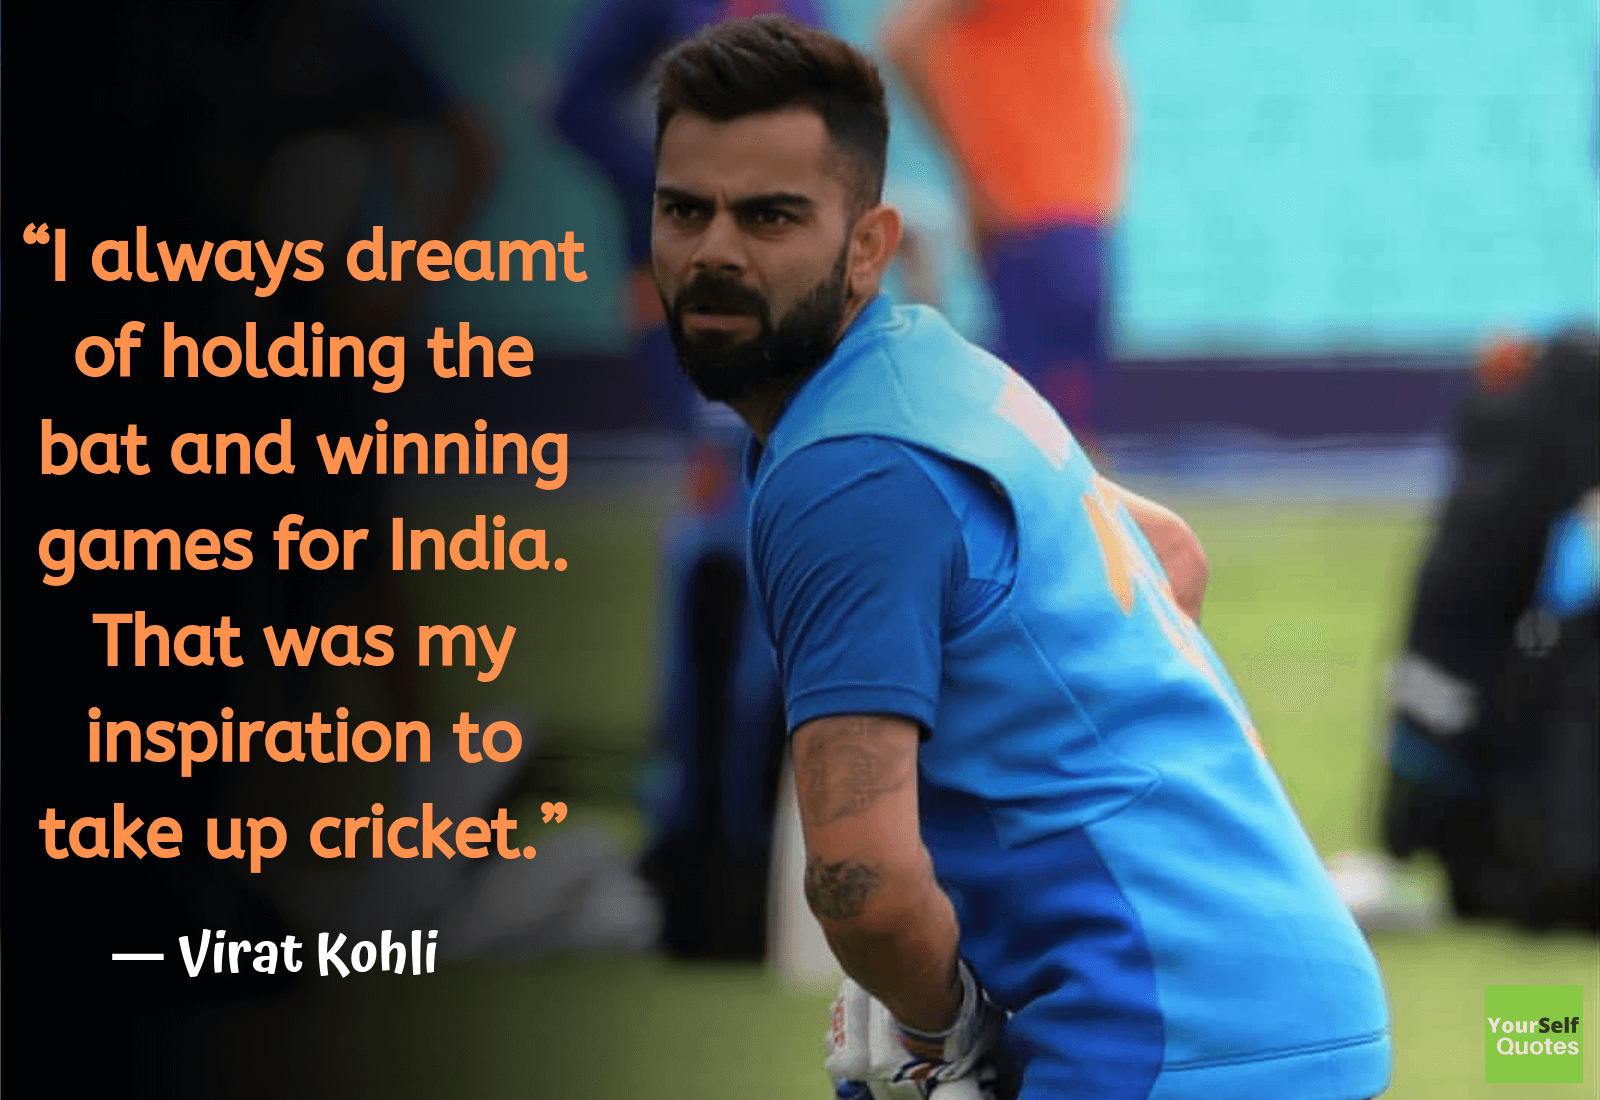 Top Famous Virat Kohli Quotes. On the off chance that there is